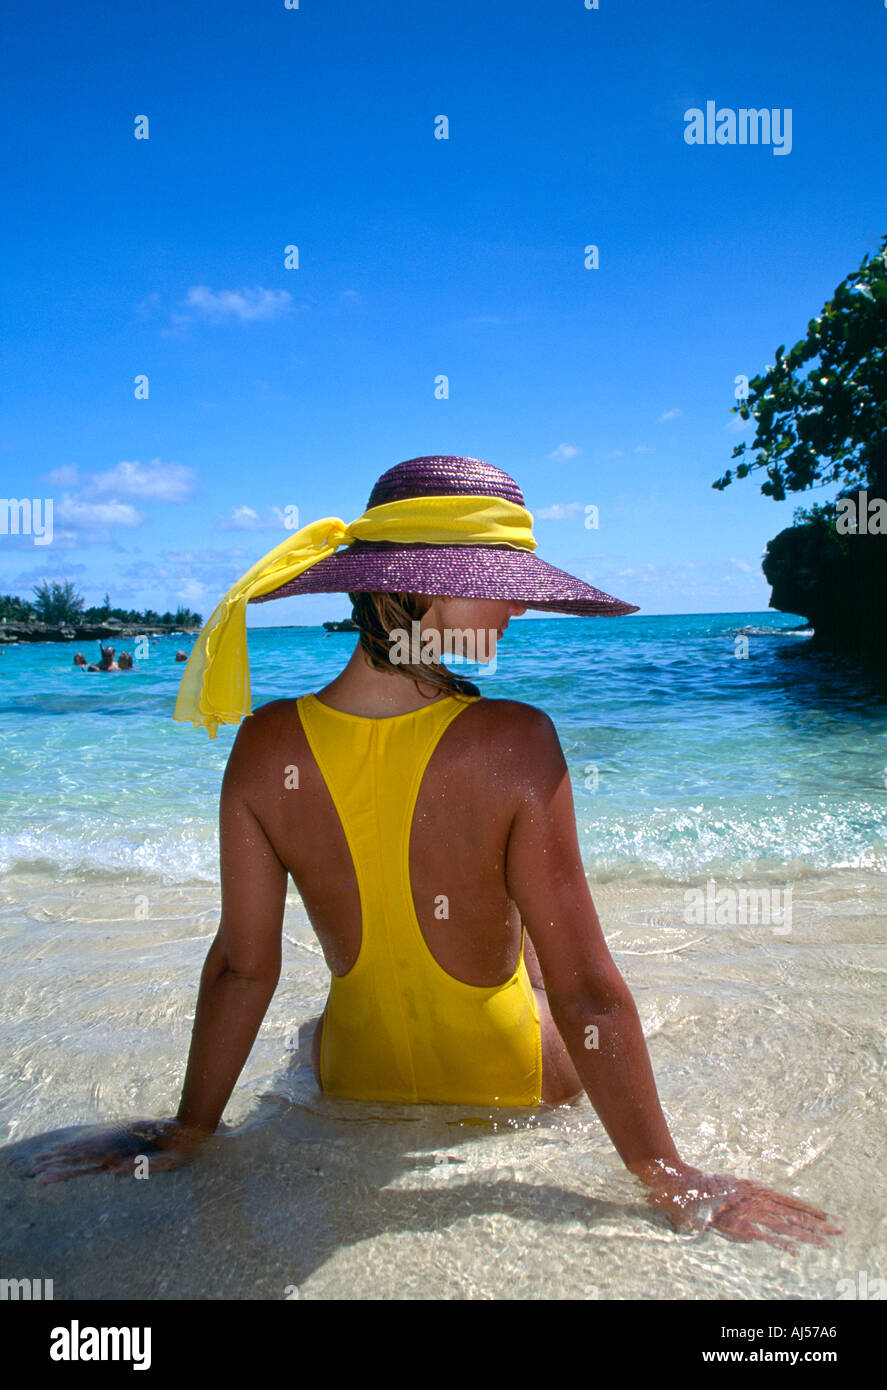 Woman in one piece bathing suit on beach Grand Cayman Cayman Islands - Stock Image